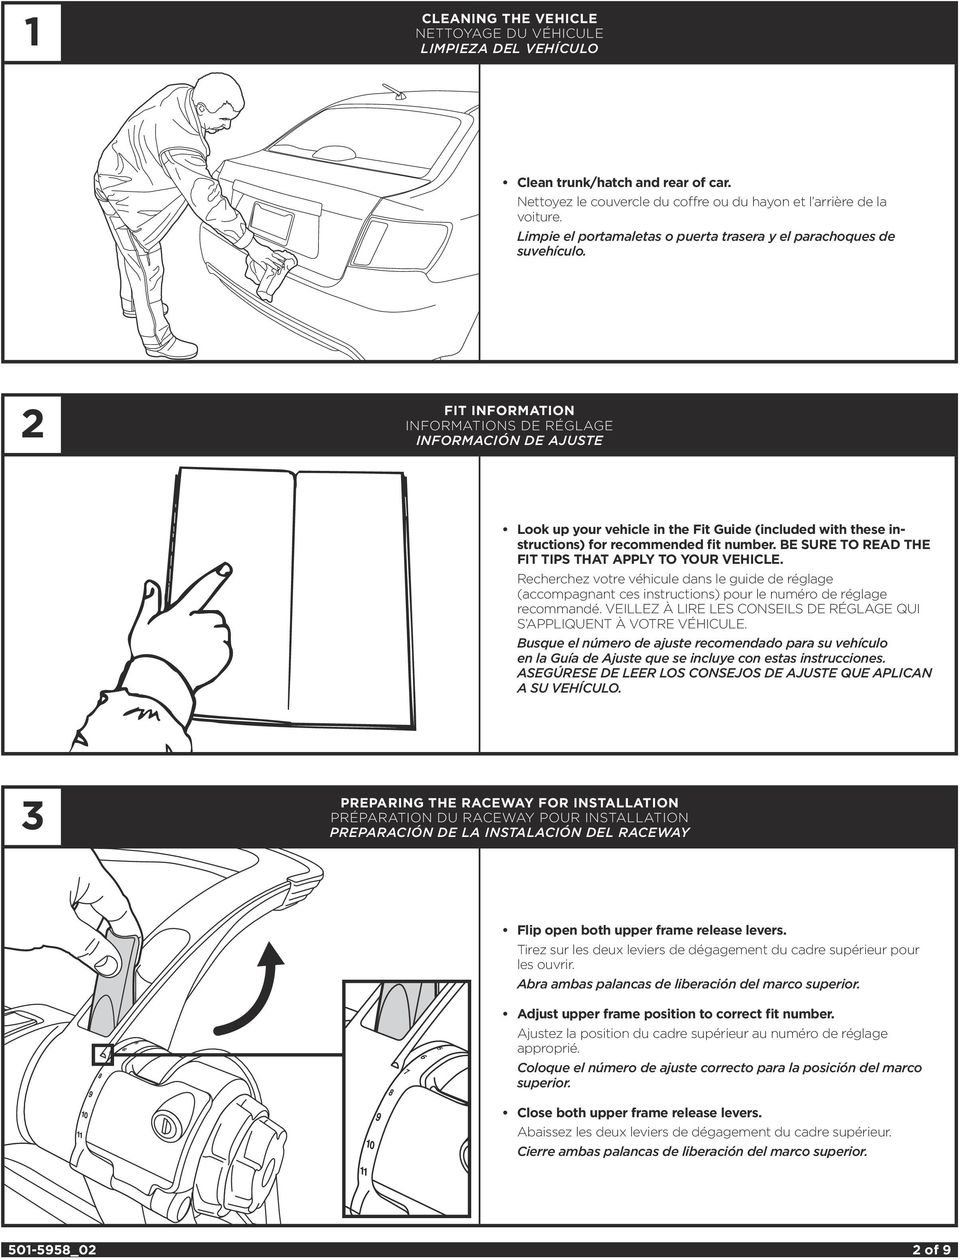 2 FIT INFORMATION INFORMATIONS DE RÉGLAGE INFORMACIÓN DE AJUSTE Look up your vehicle in the Fit Guide (included with these instructions) for recommended fit number.